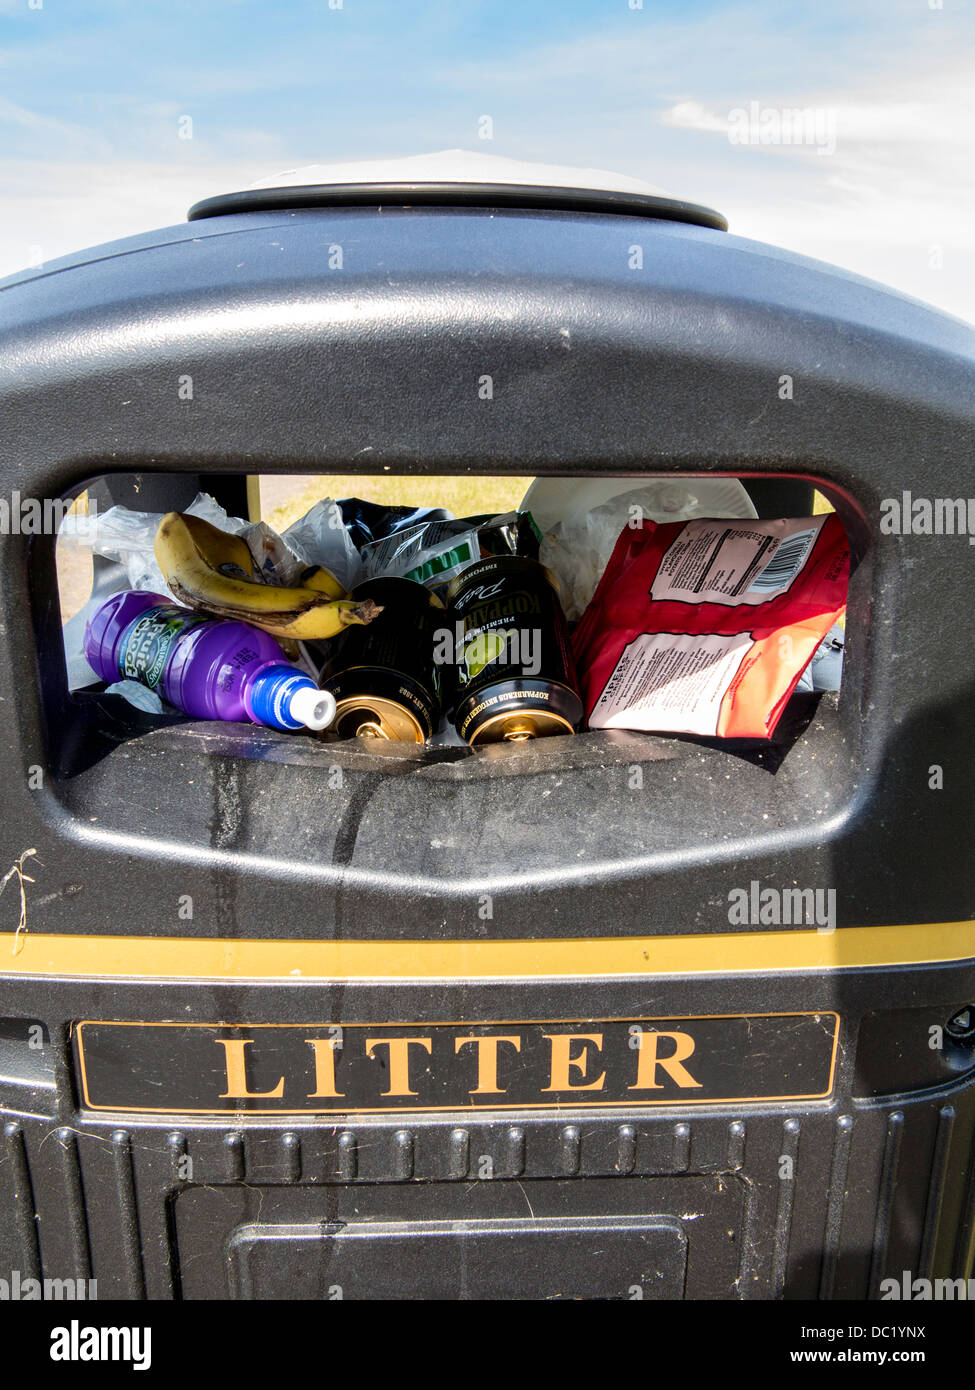 Litter bin full and overflowing - Stock Image